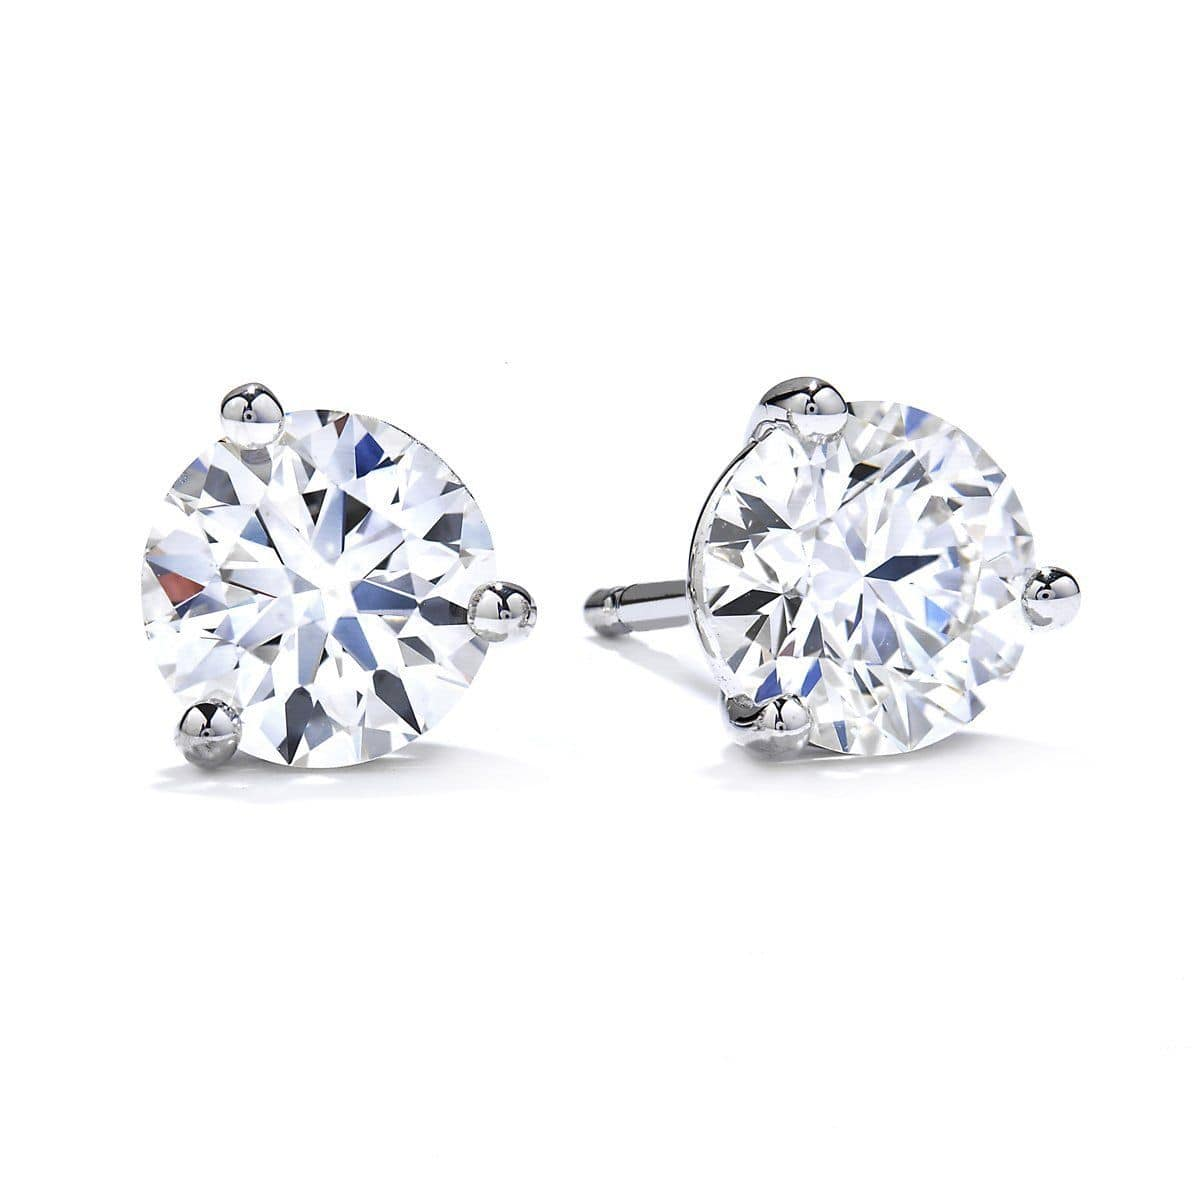 Three-Prong Diamond Stud Earrings - 3SIE01508